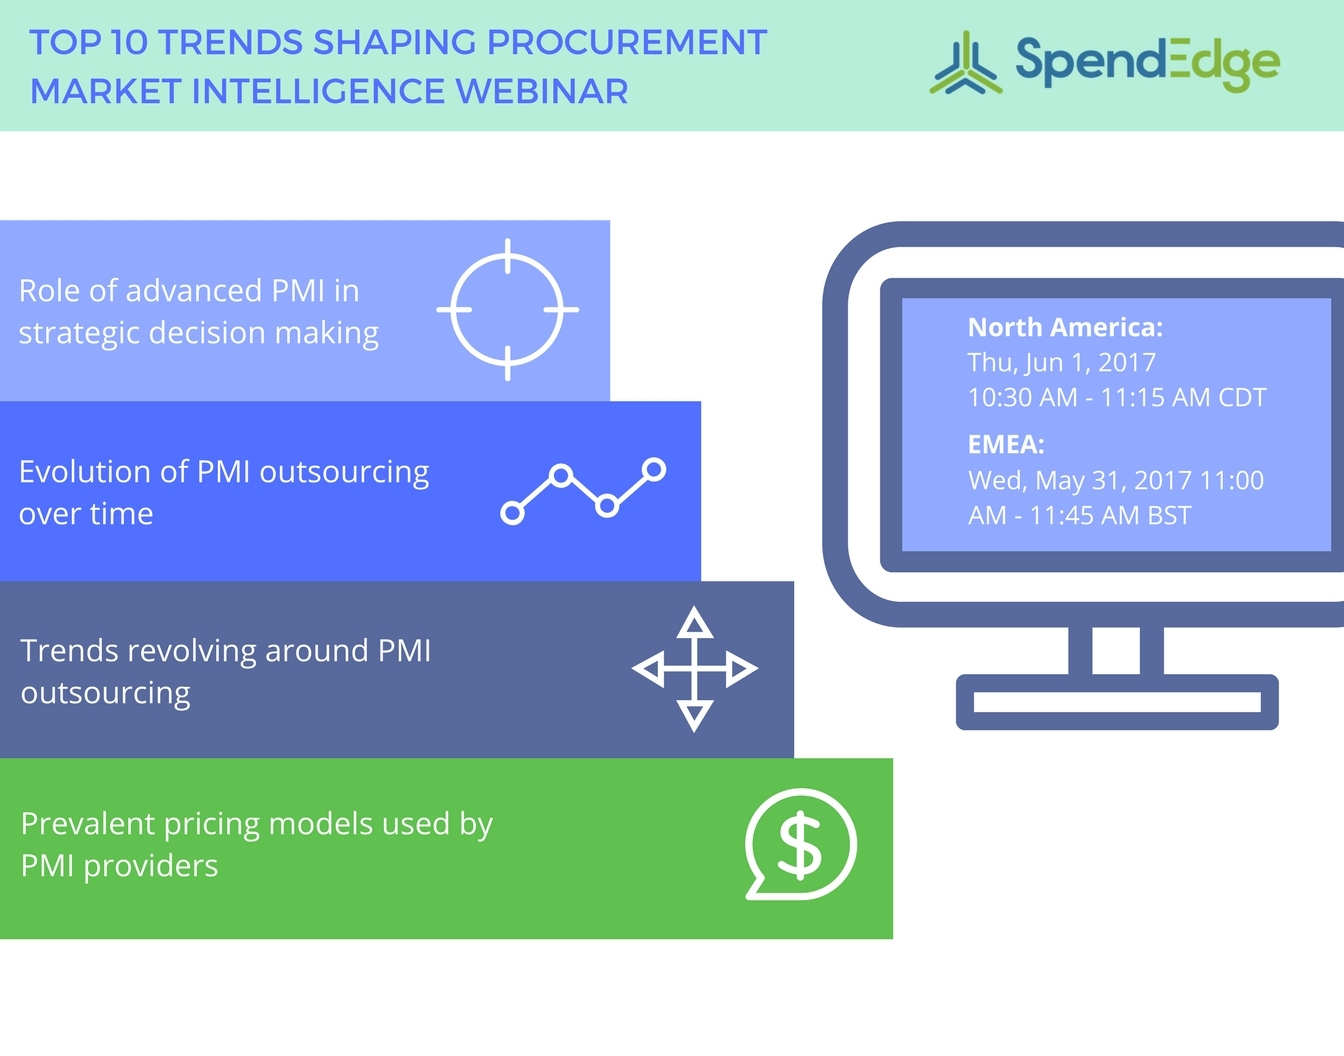 SpendEdge is hosting a webinar on the top 10 trends shaping procurement market intelligence. (Graphic: Business Wire)